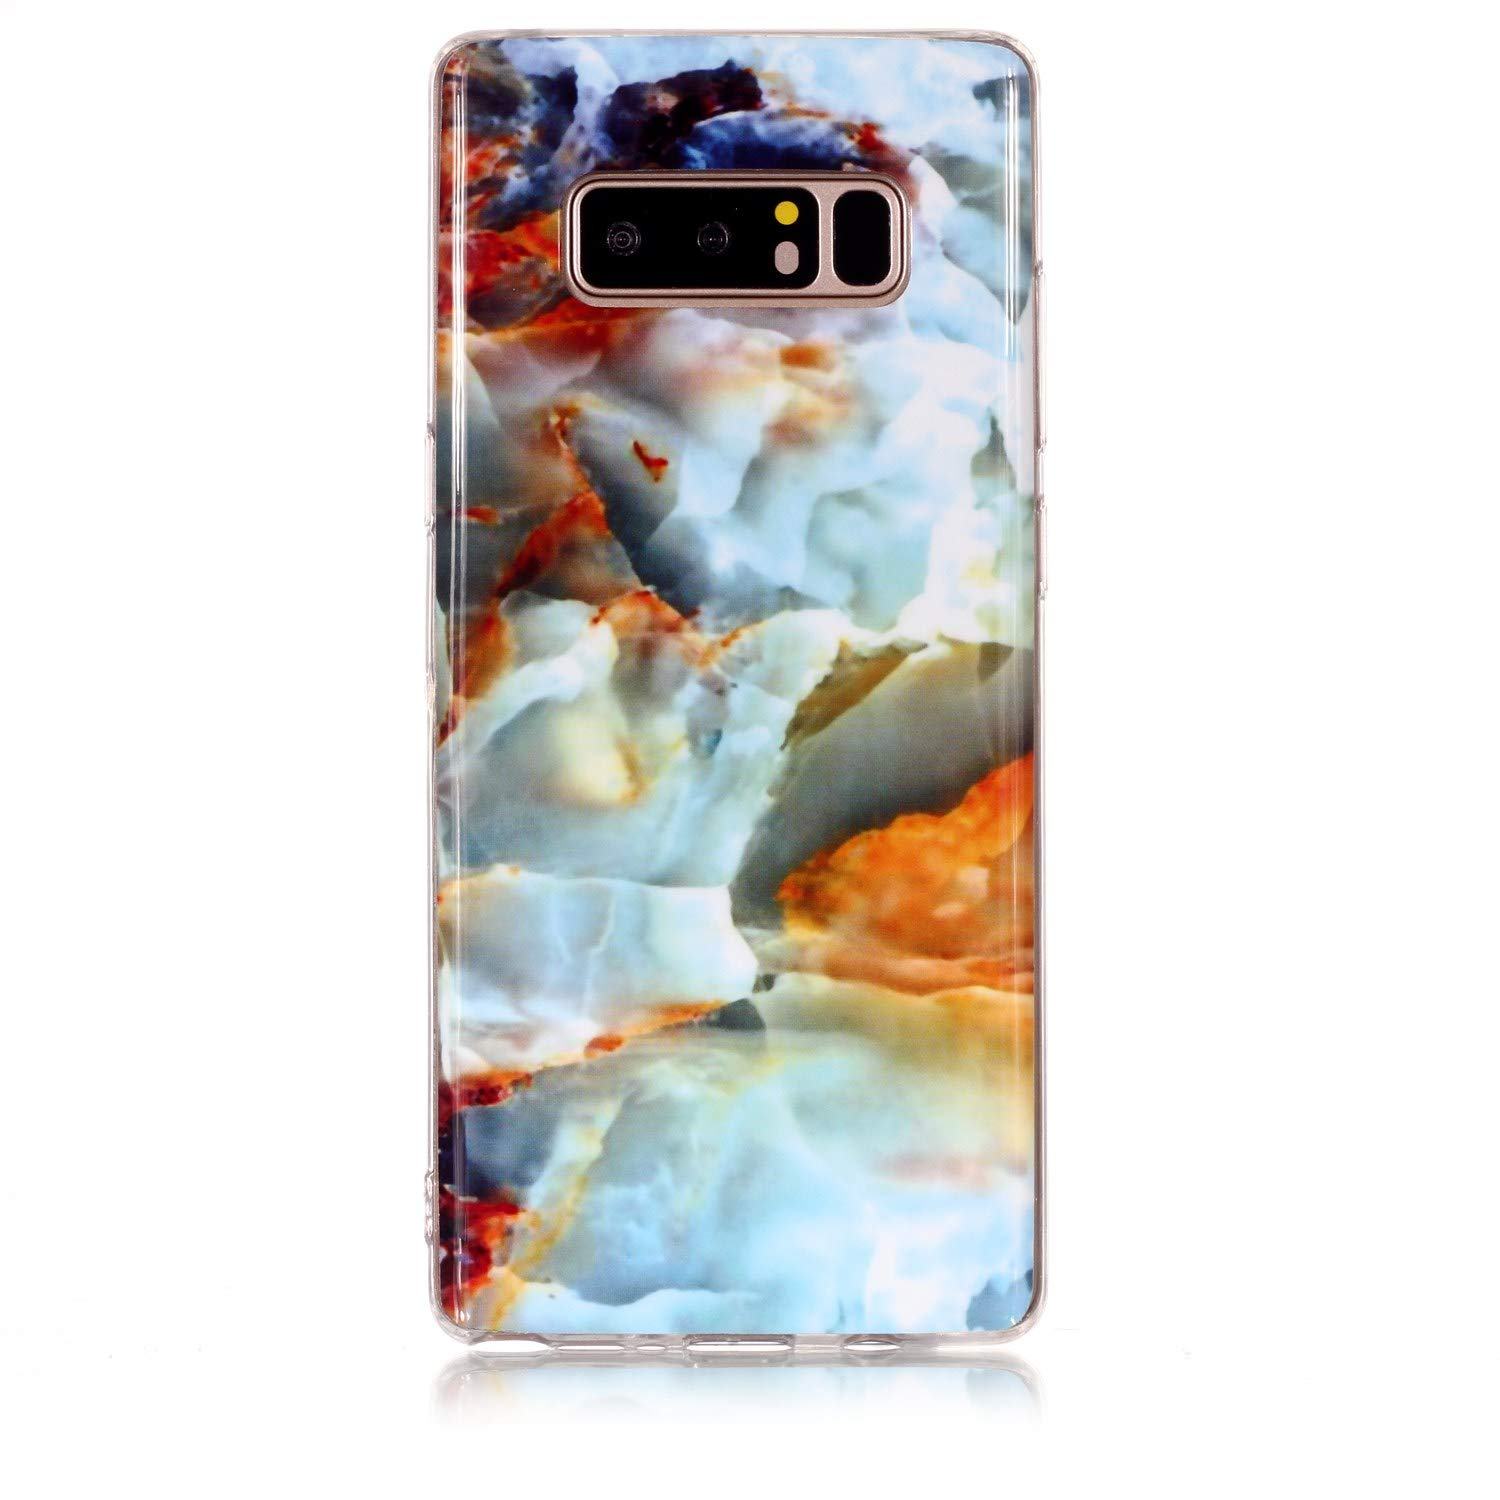 for Samsung Galaxy Note 9 Marble Case with Screen Protector,Unique Pattern Design Skin Ultra Thin Slim Fit Soft Gel Silicone Case,QFFUN Shockproof Anti-Scratch Protective Back Cover - Fire Cloud